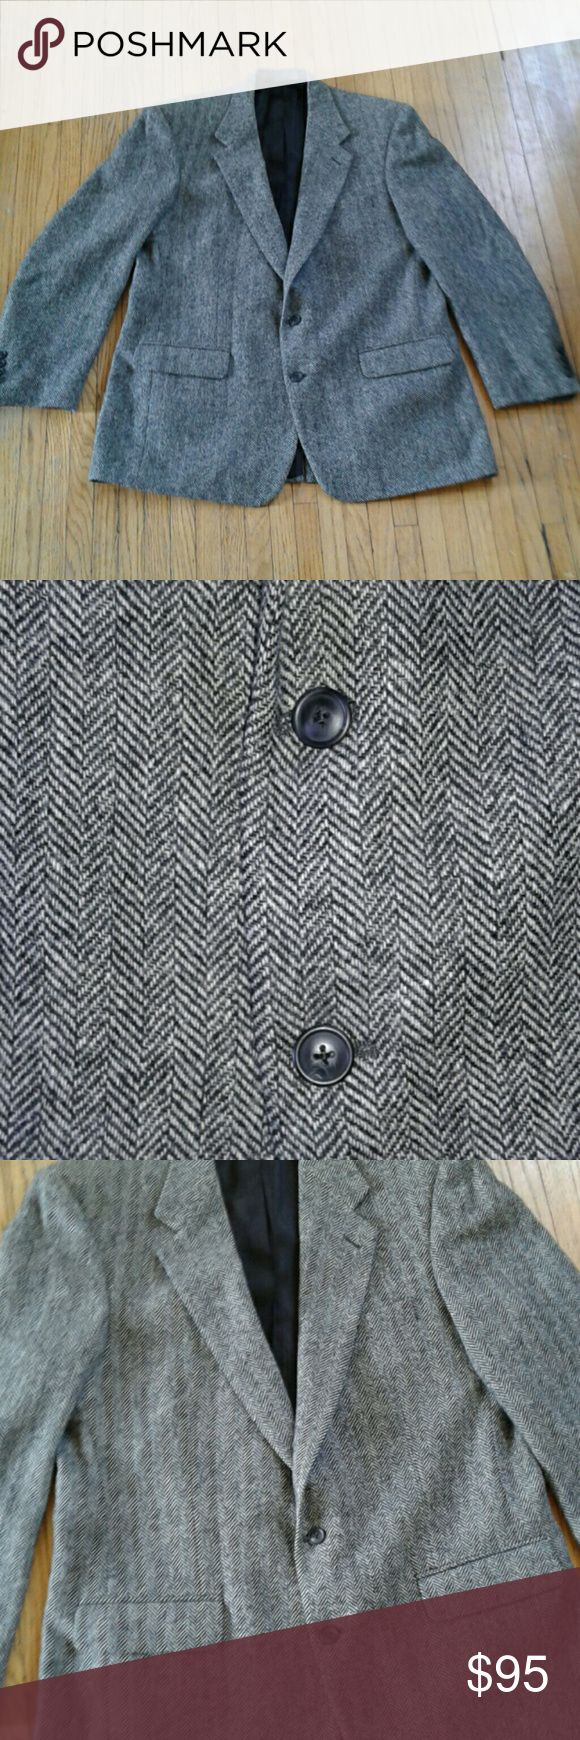 Burberry Herringbone Men's Wool Blazer EUC black and white Herringbone patterned wool blazer. 1 small stain on interior Burberry Label. Otherwise no other damage!! Pit to pit 23. Length 35. Shoulders 20. Waist 22.5. Burberry Suits & Blazers Sport Coats & Blazers